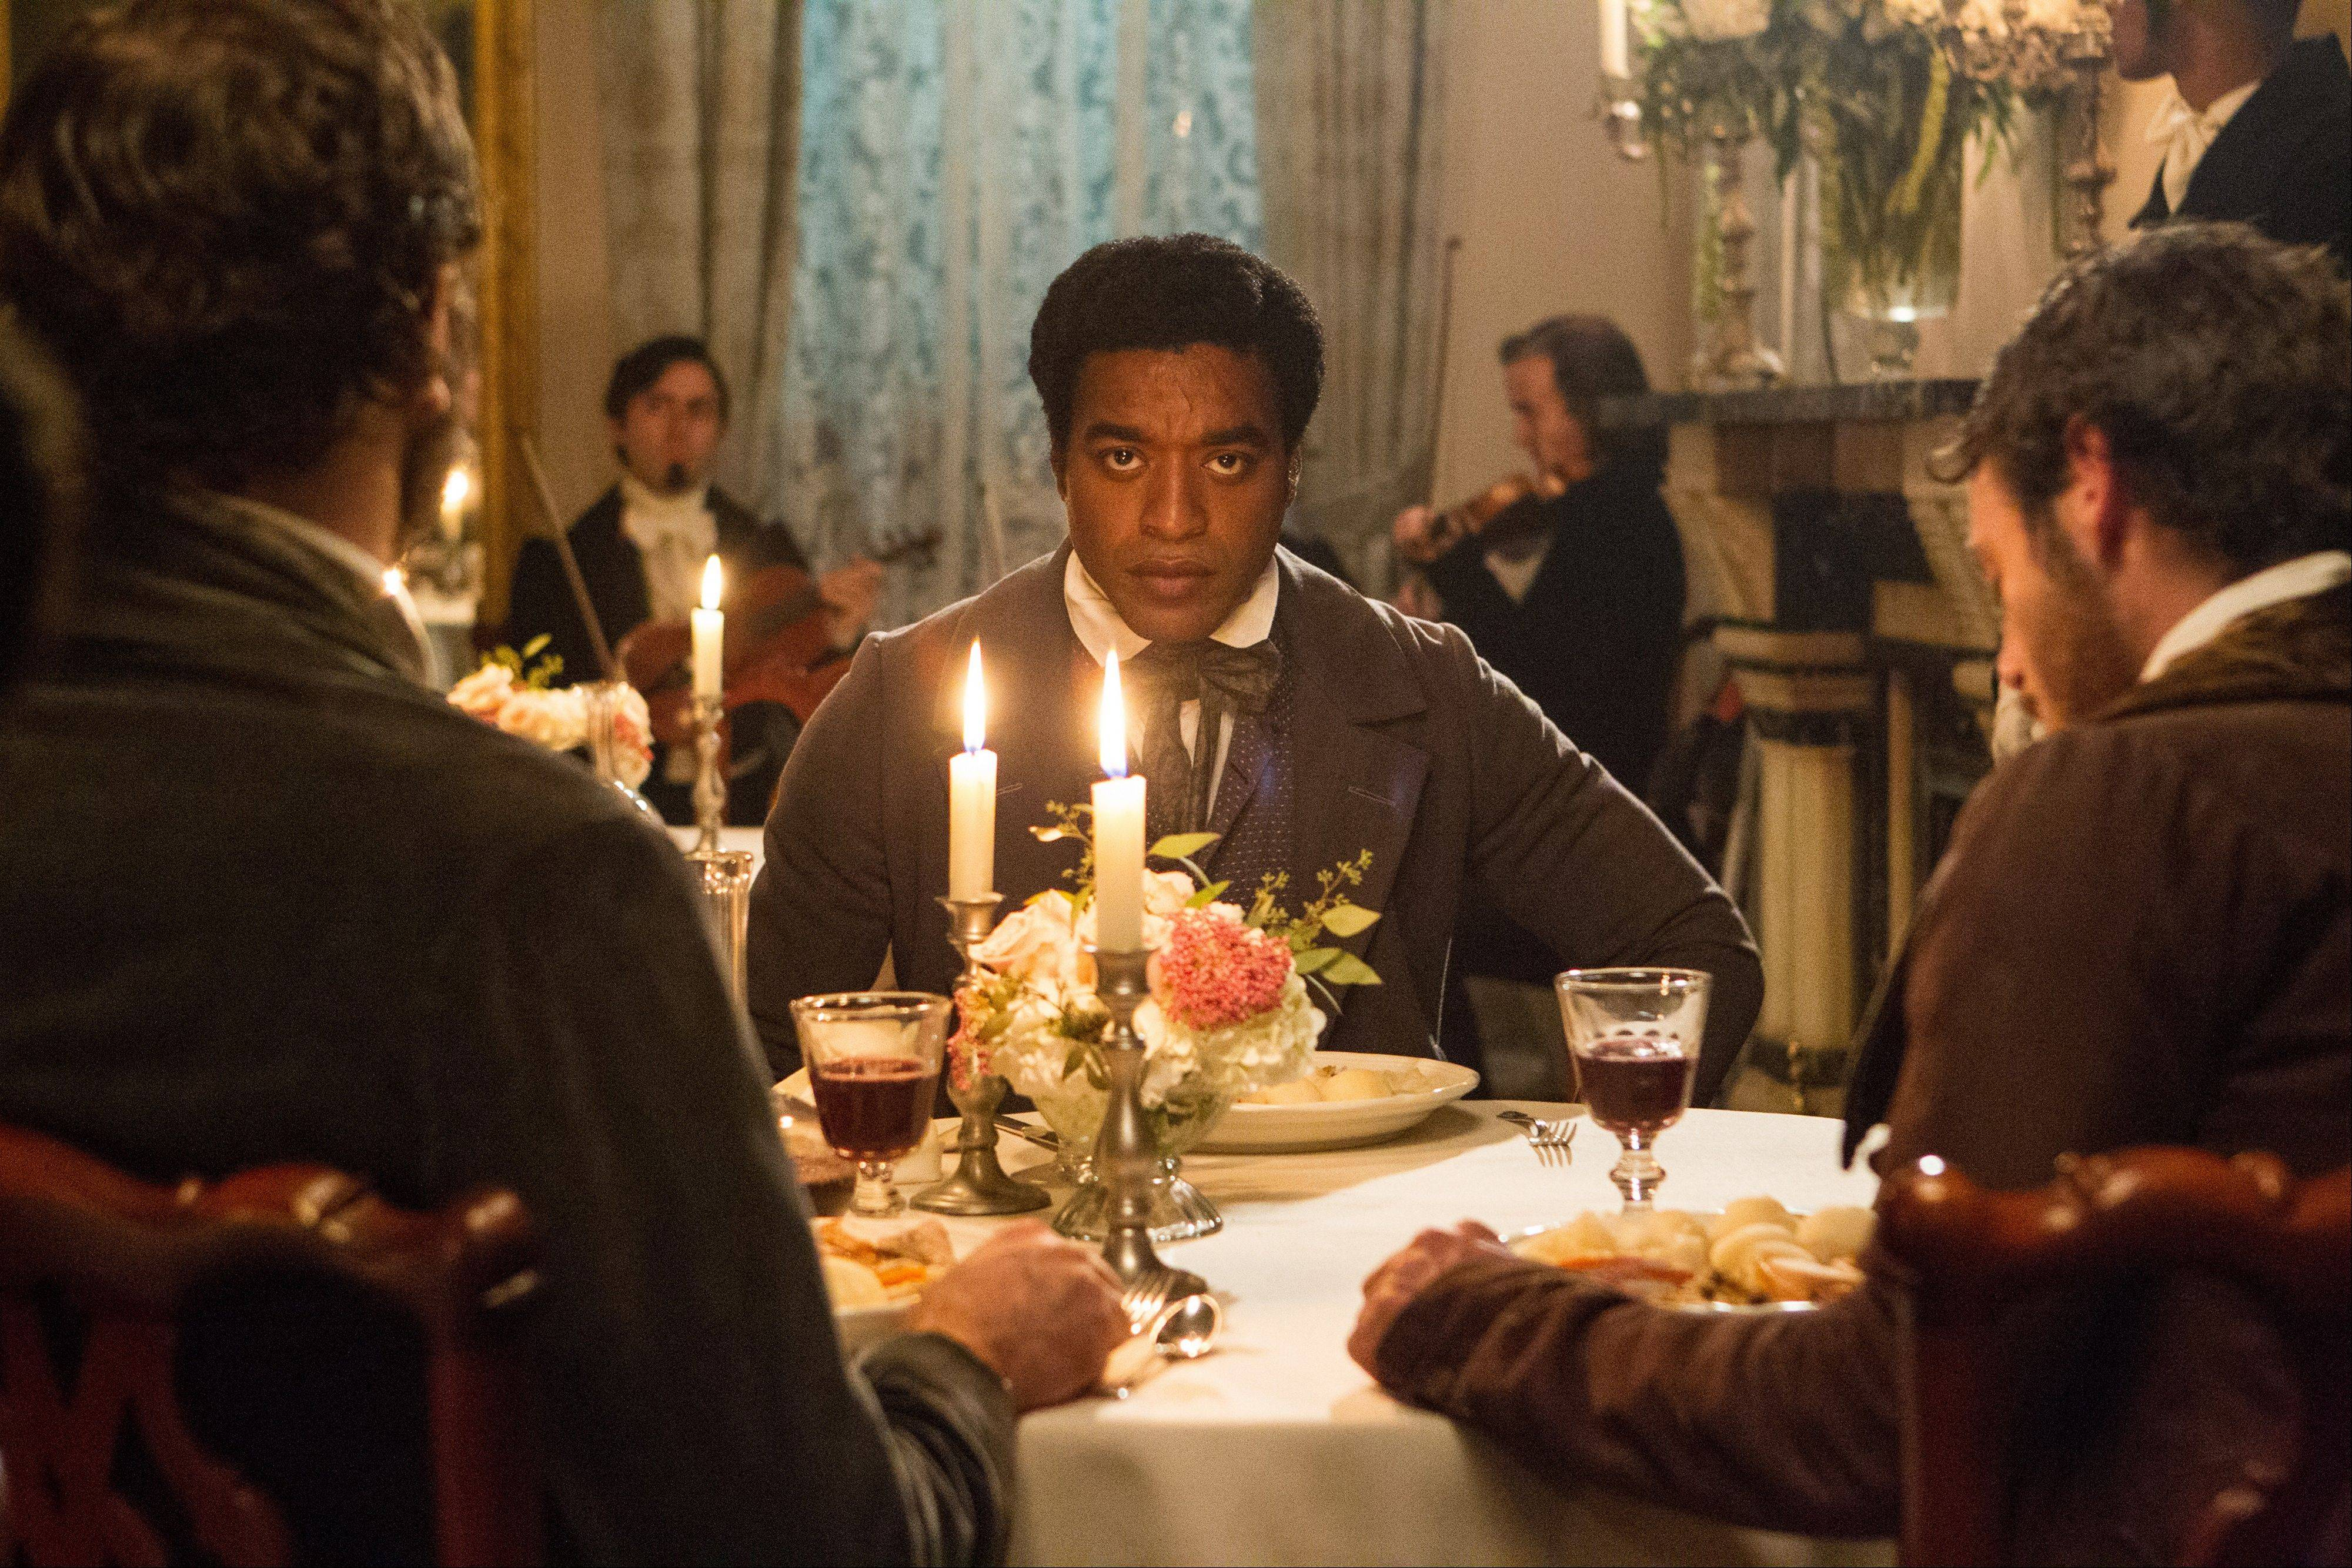 Chiwetel Ejiofor in a scene from �12 Years A Slave.� From �12 Years a Slave� to �The Butler� to �Fruitvale Station,� 2013 has been a banner year for movies directed by black filmmakers. Like seldom before, African American stories are being told on the big screen without white protagonists.